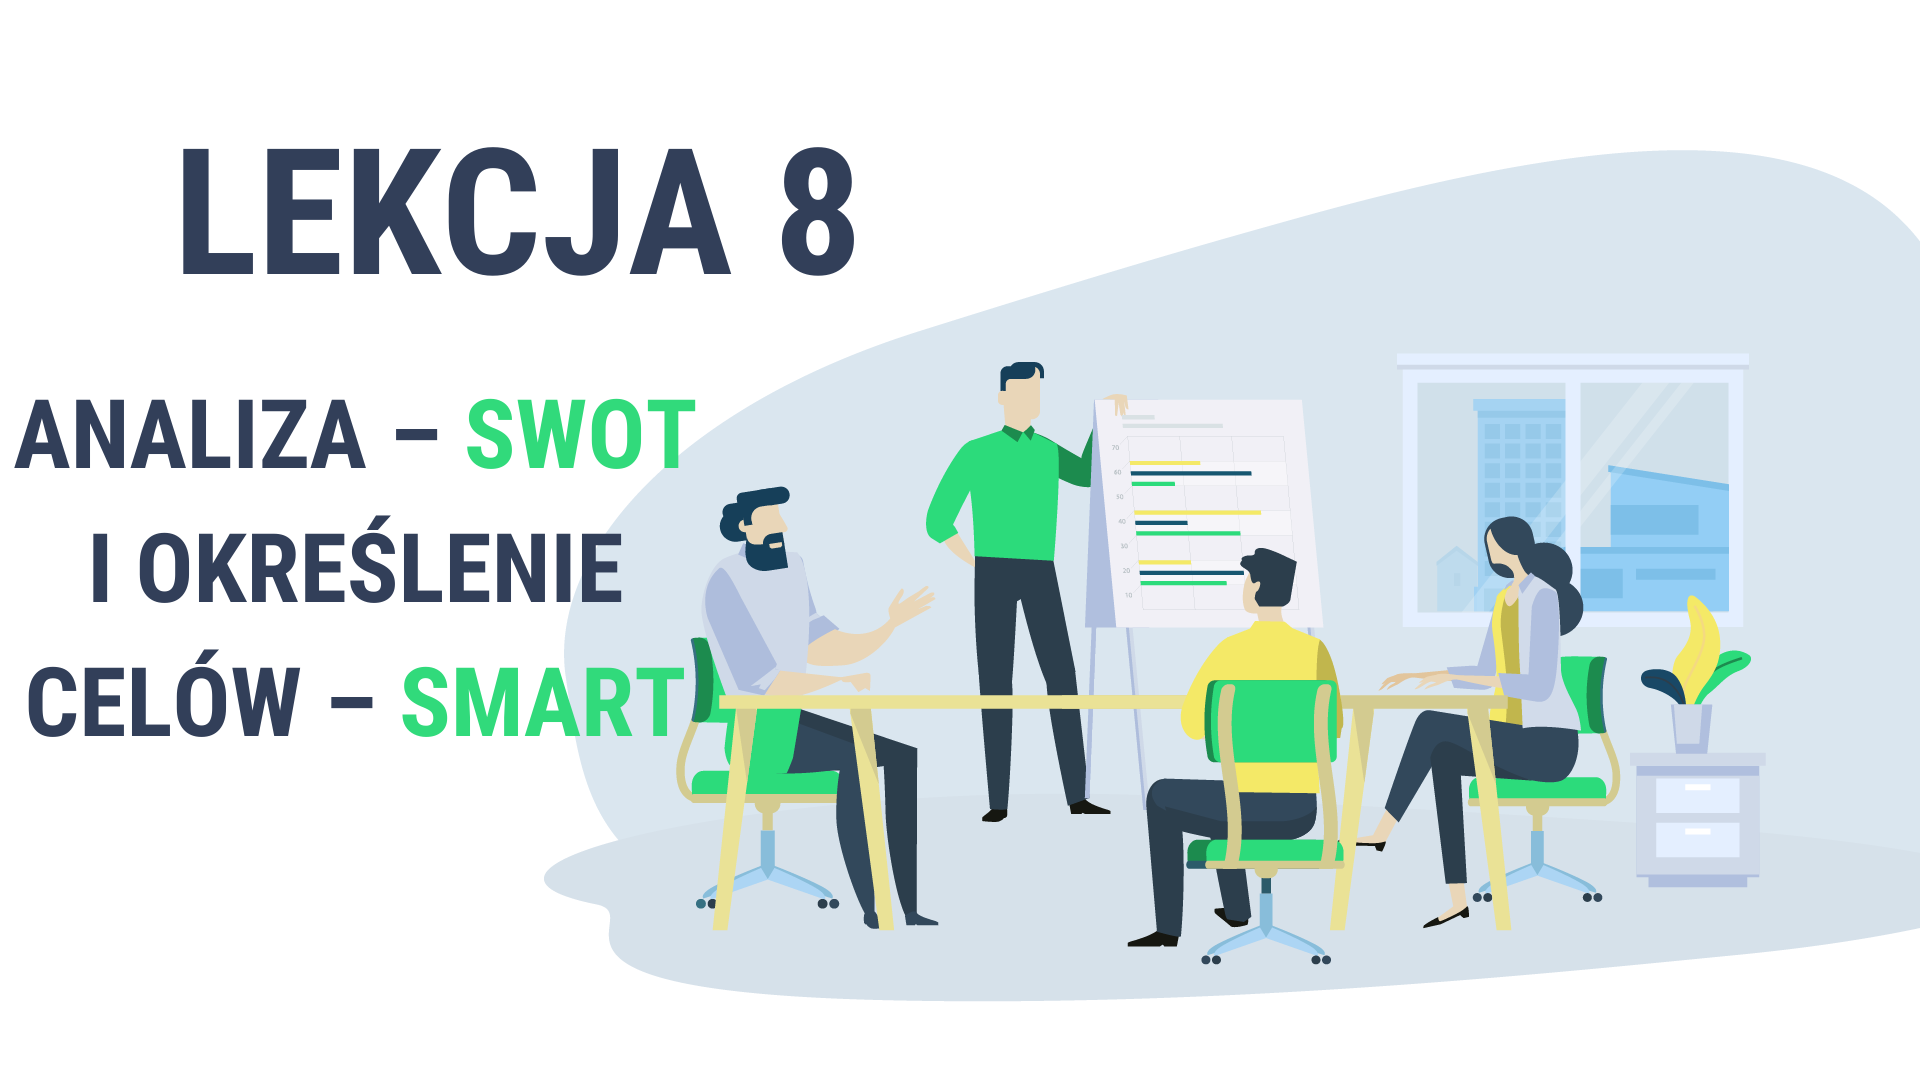 Lekcja 8 - Analiza SWOT i SMART